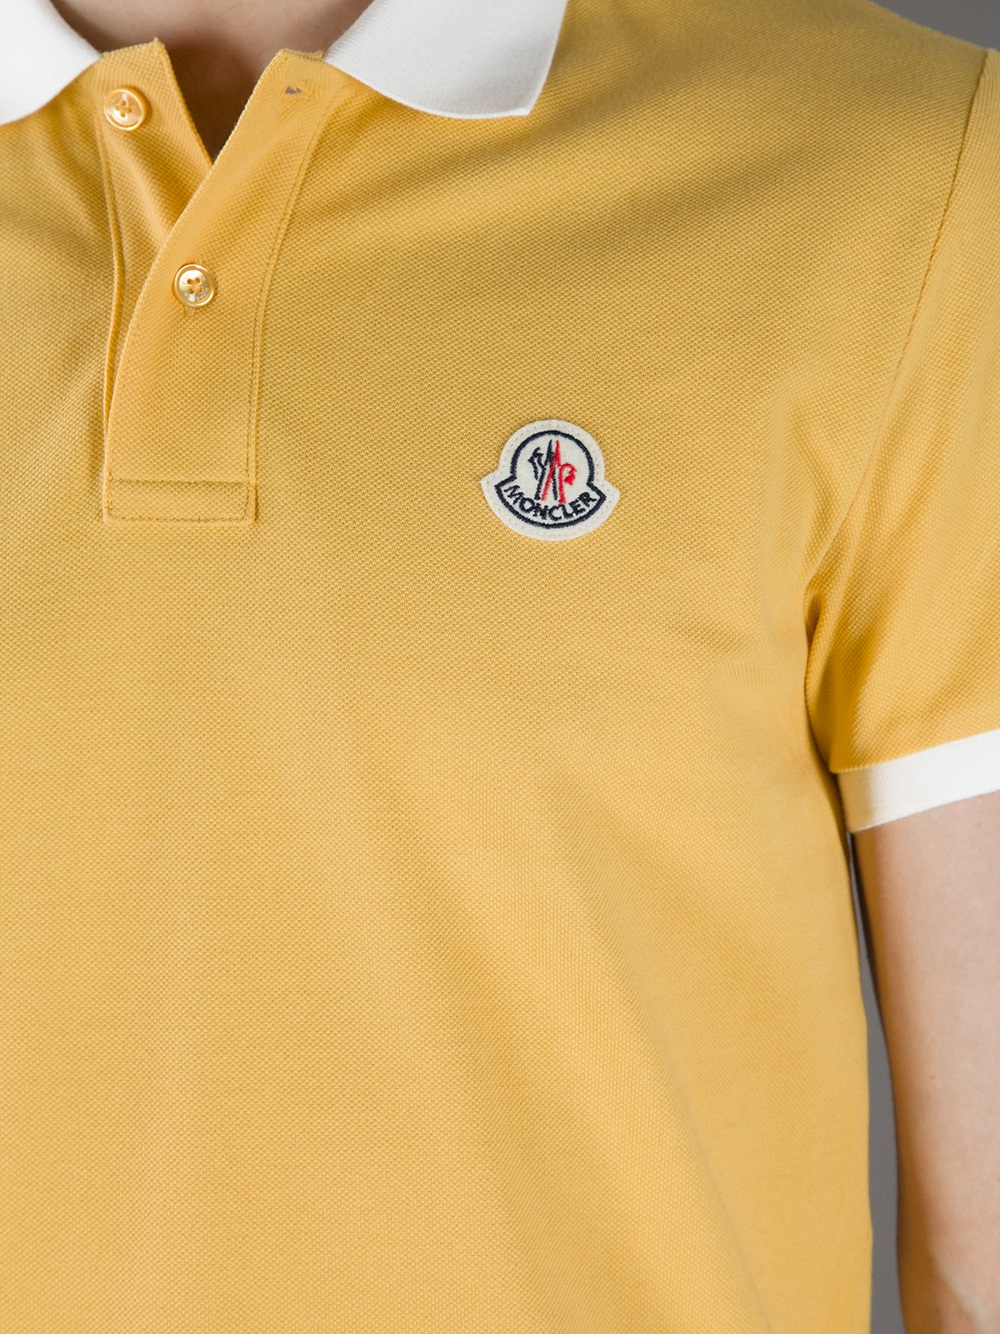 yellow moncler shirt